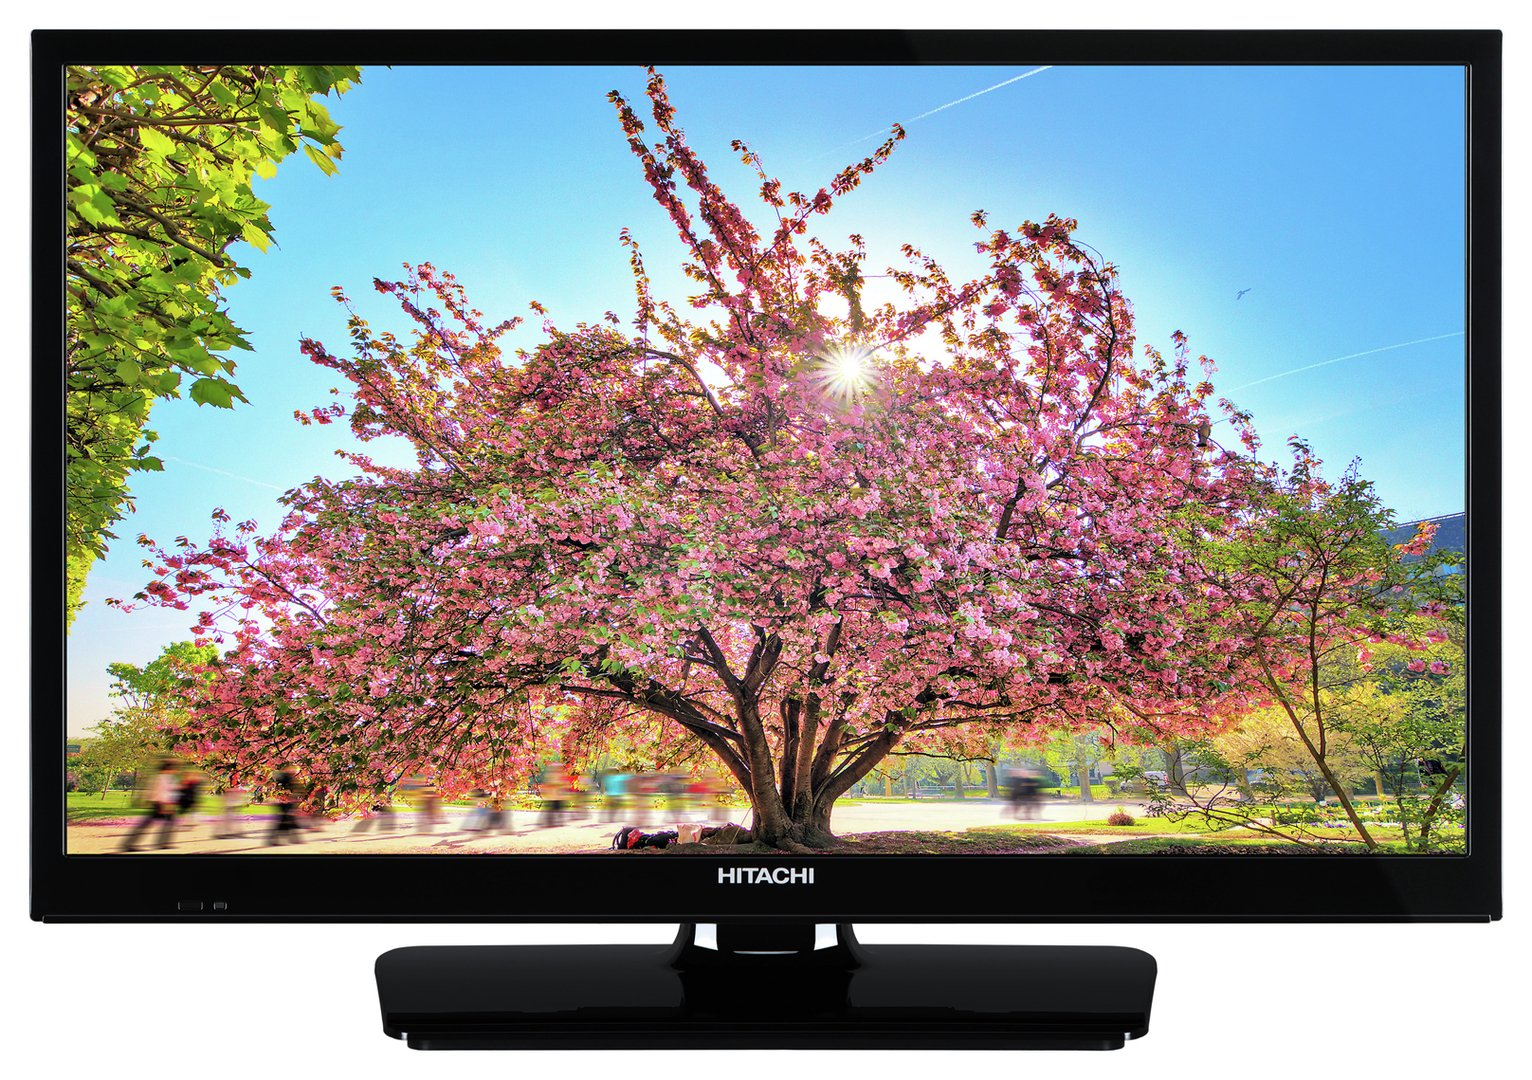 Hitachi 22 Inch Full HD DVD Combi from Hitachi